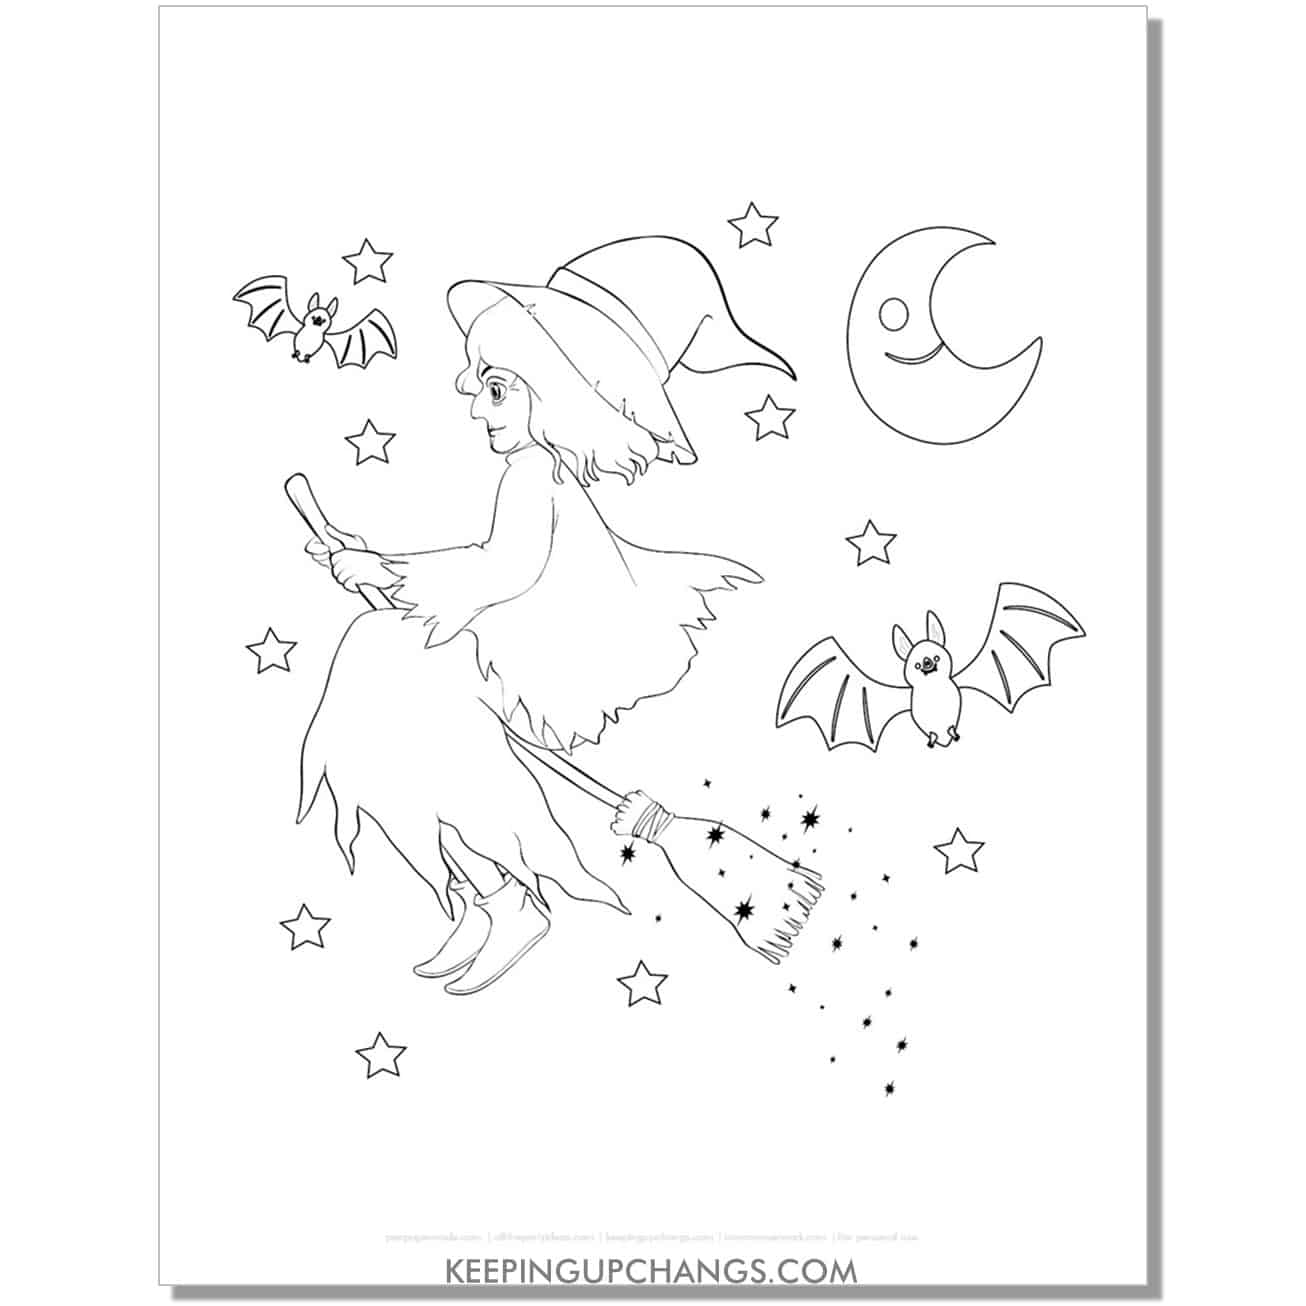 free anime witch flying on broomstick doodle coloring page.